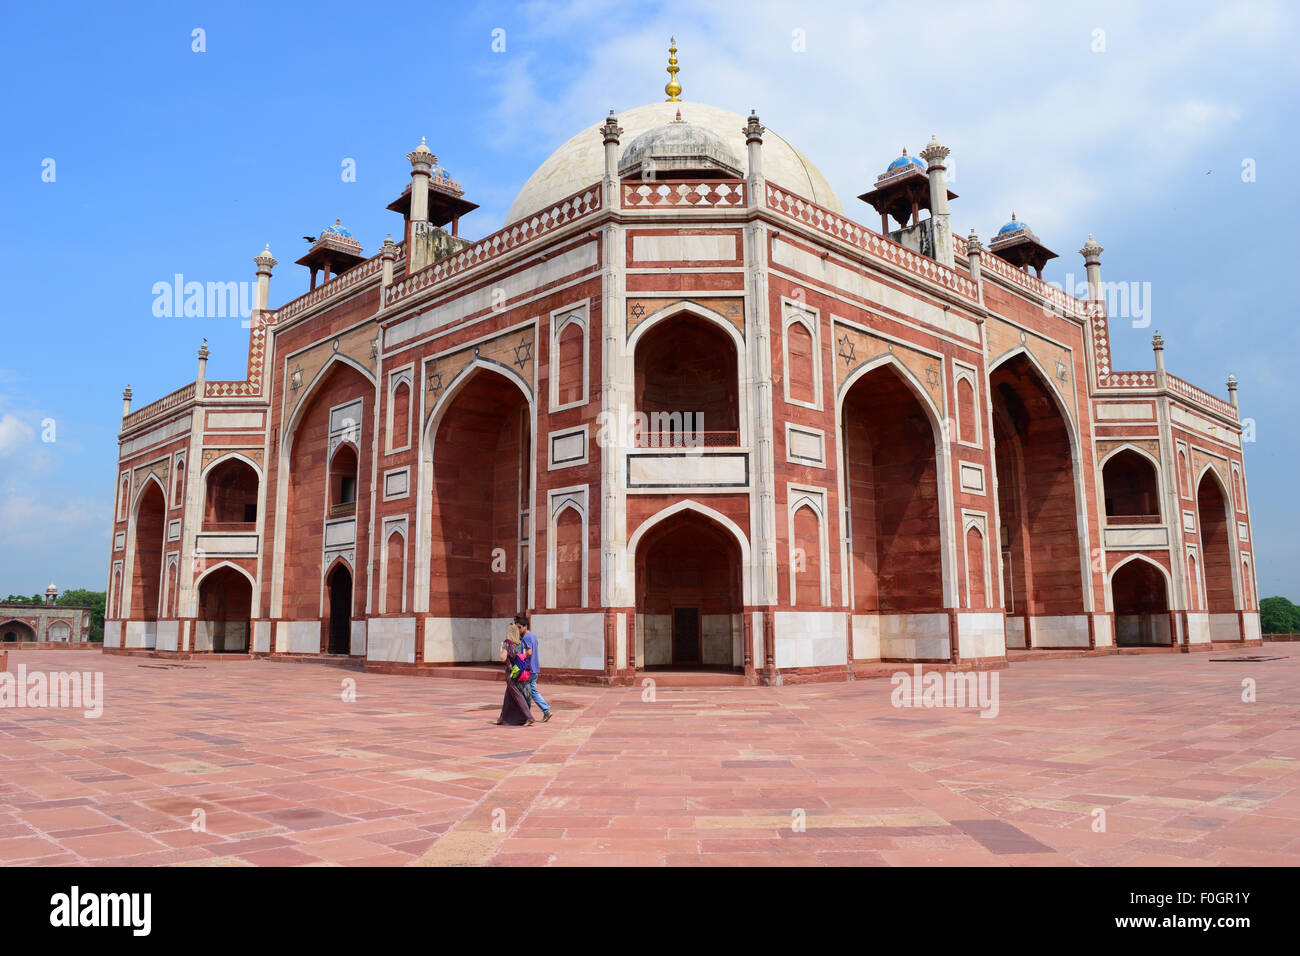 humayuns tomb the beautiful mughal architecture in delhi india